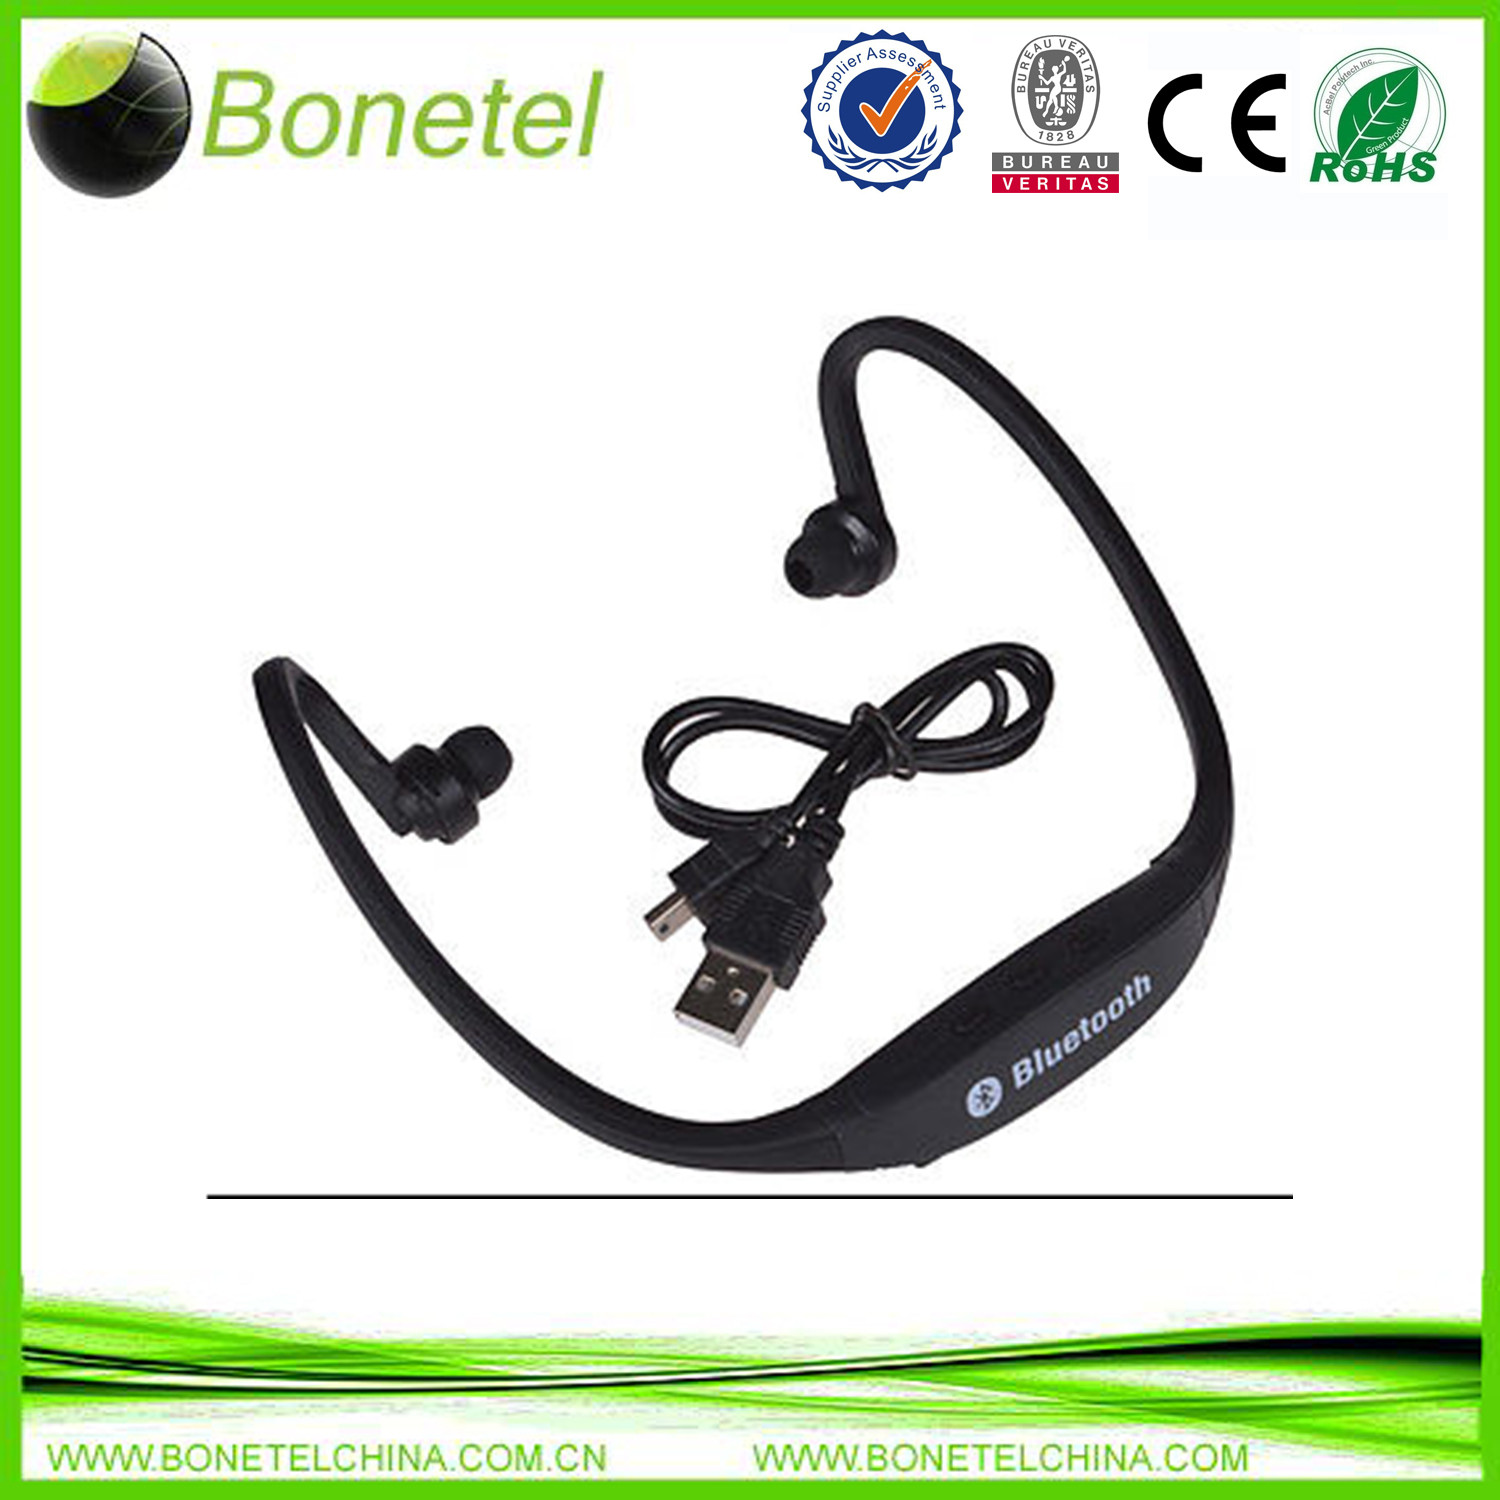 Sports Stereo Wireless Bluetooth Headset Handphone Earphone for Samsung iPhone